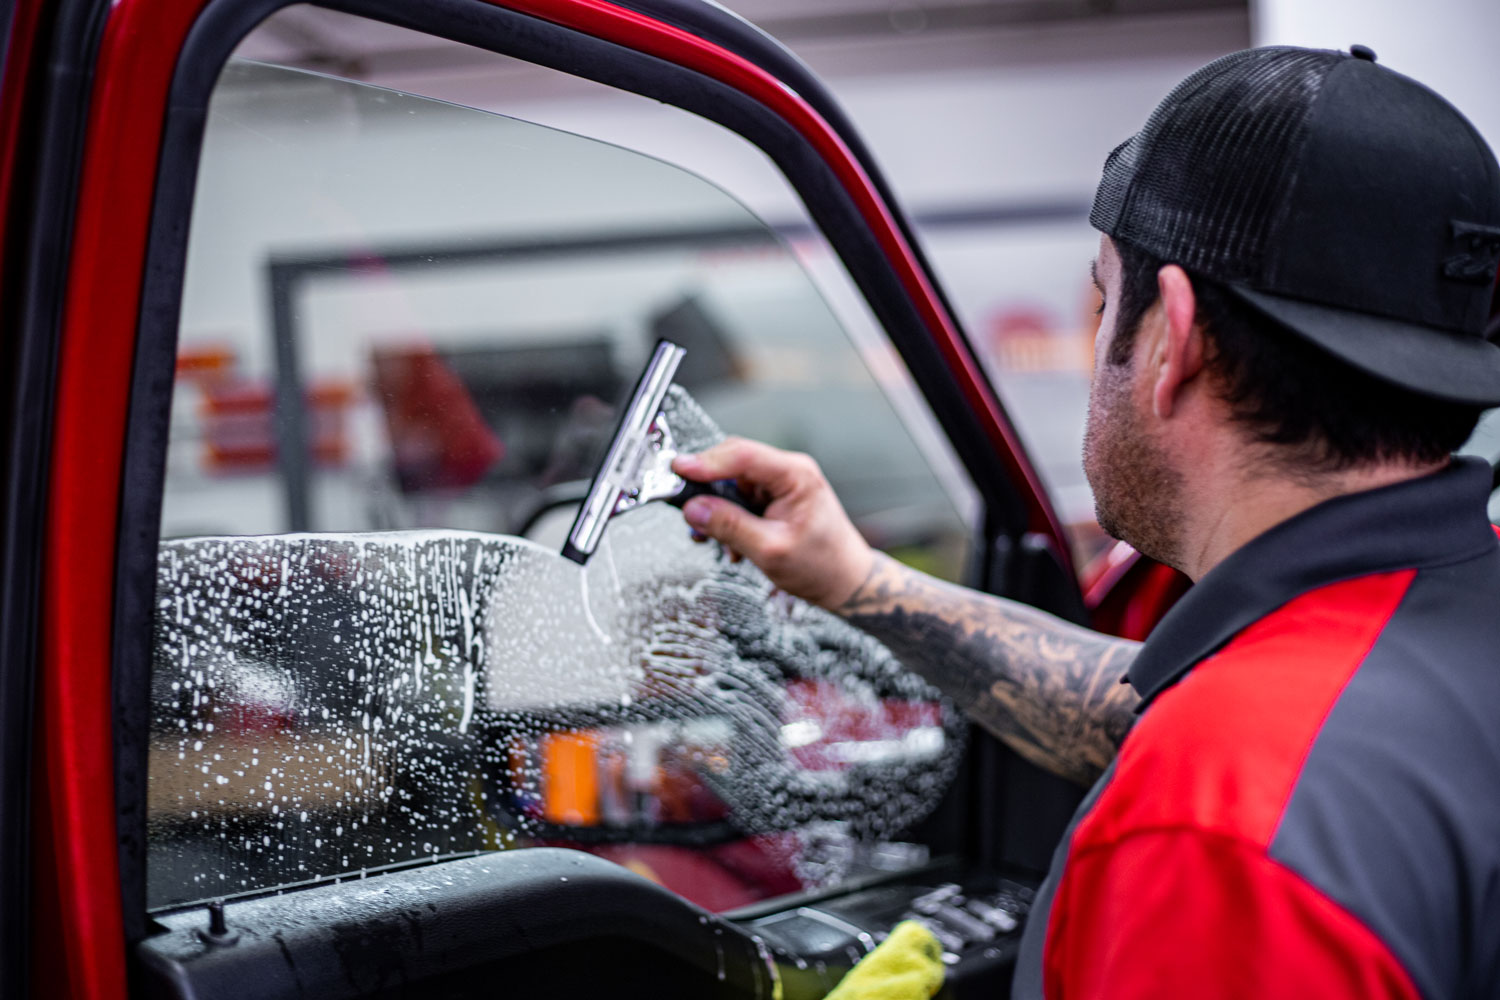 A man cleaning the car window after a tint installation.